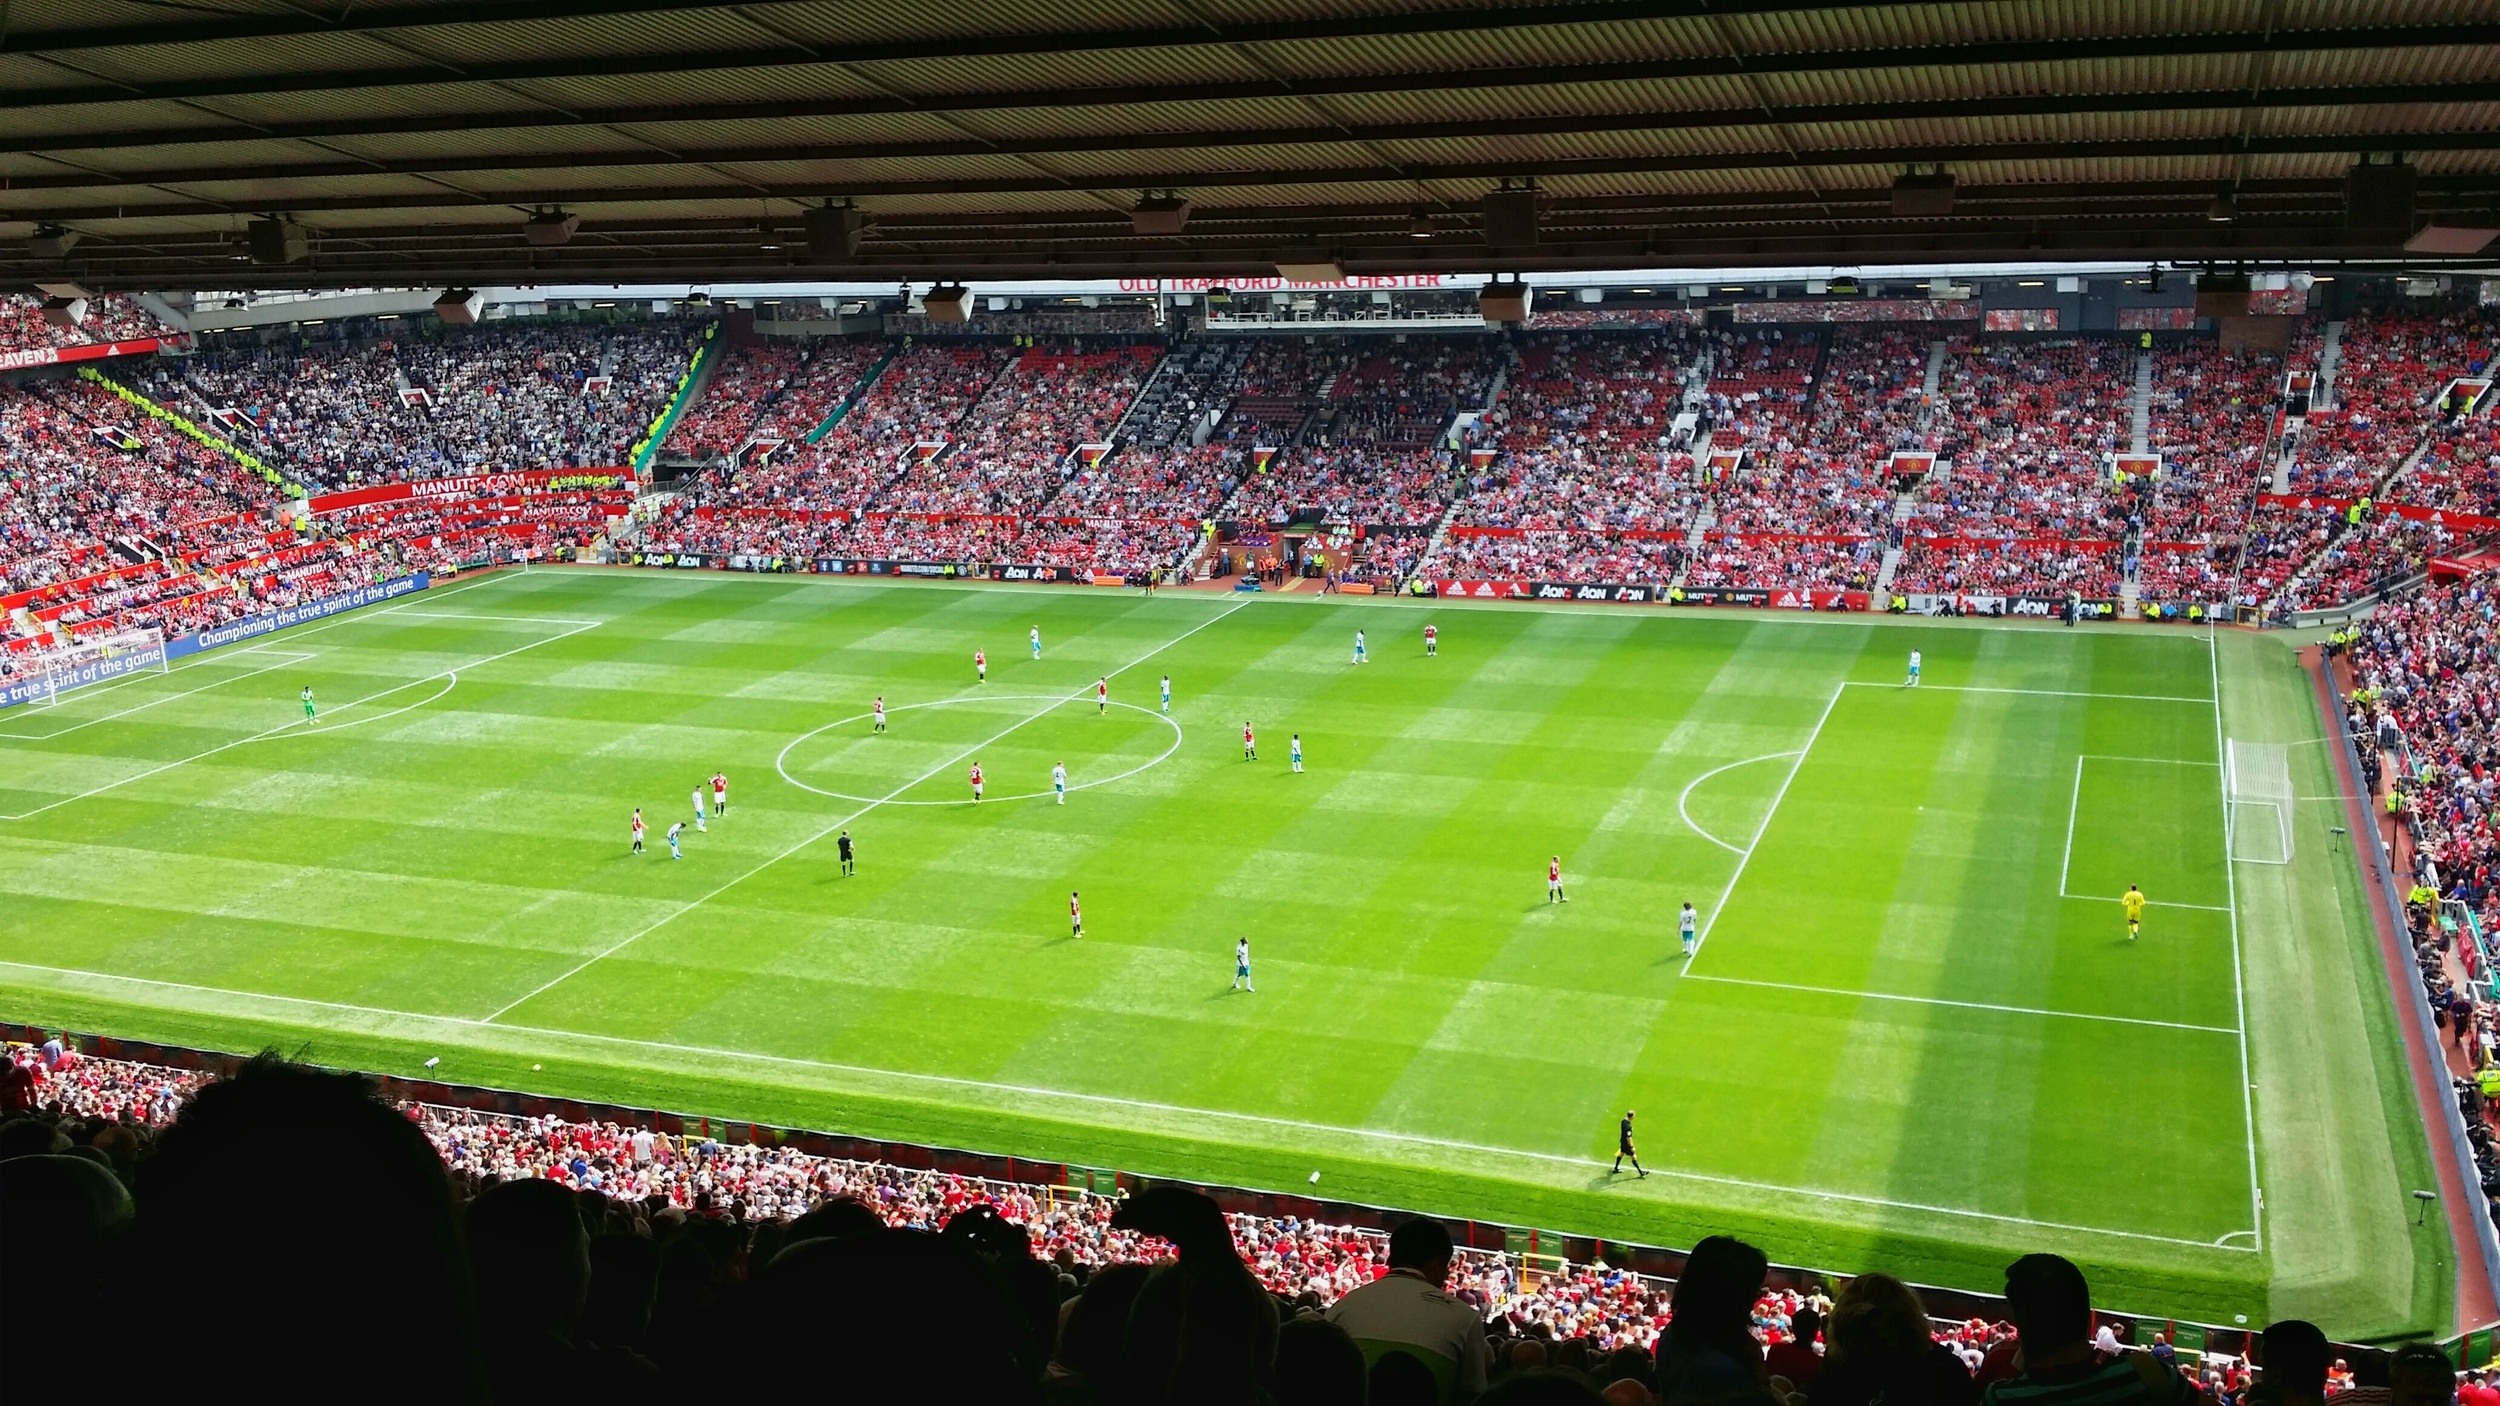 the view from our sir alex ferguson stand seats on game day.